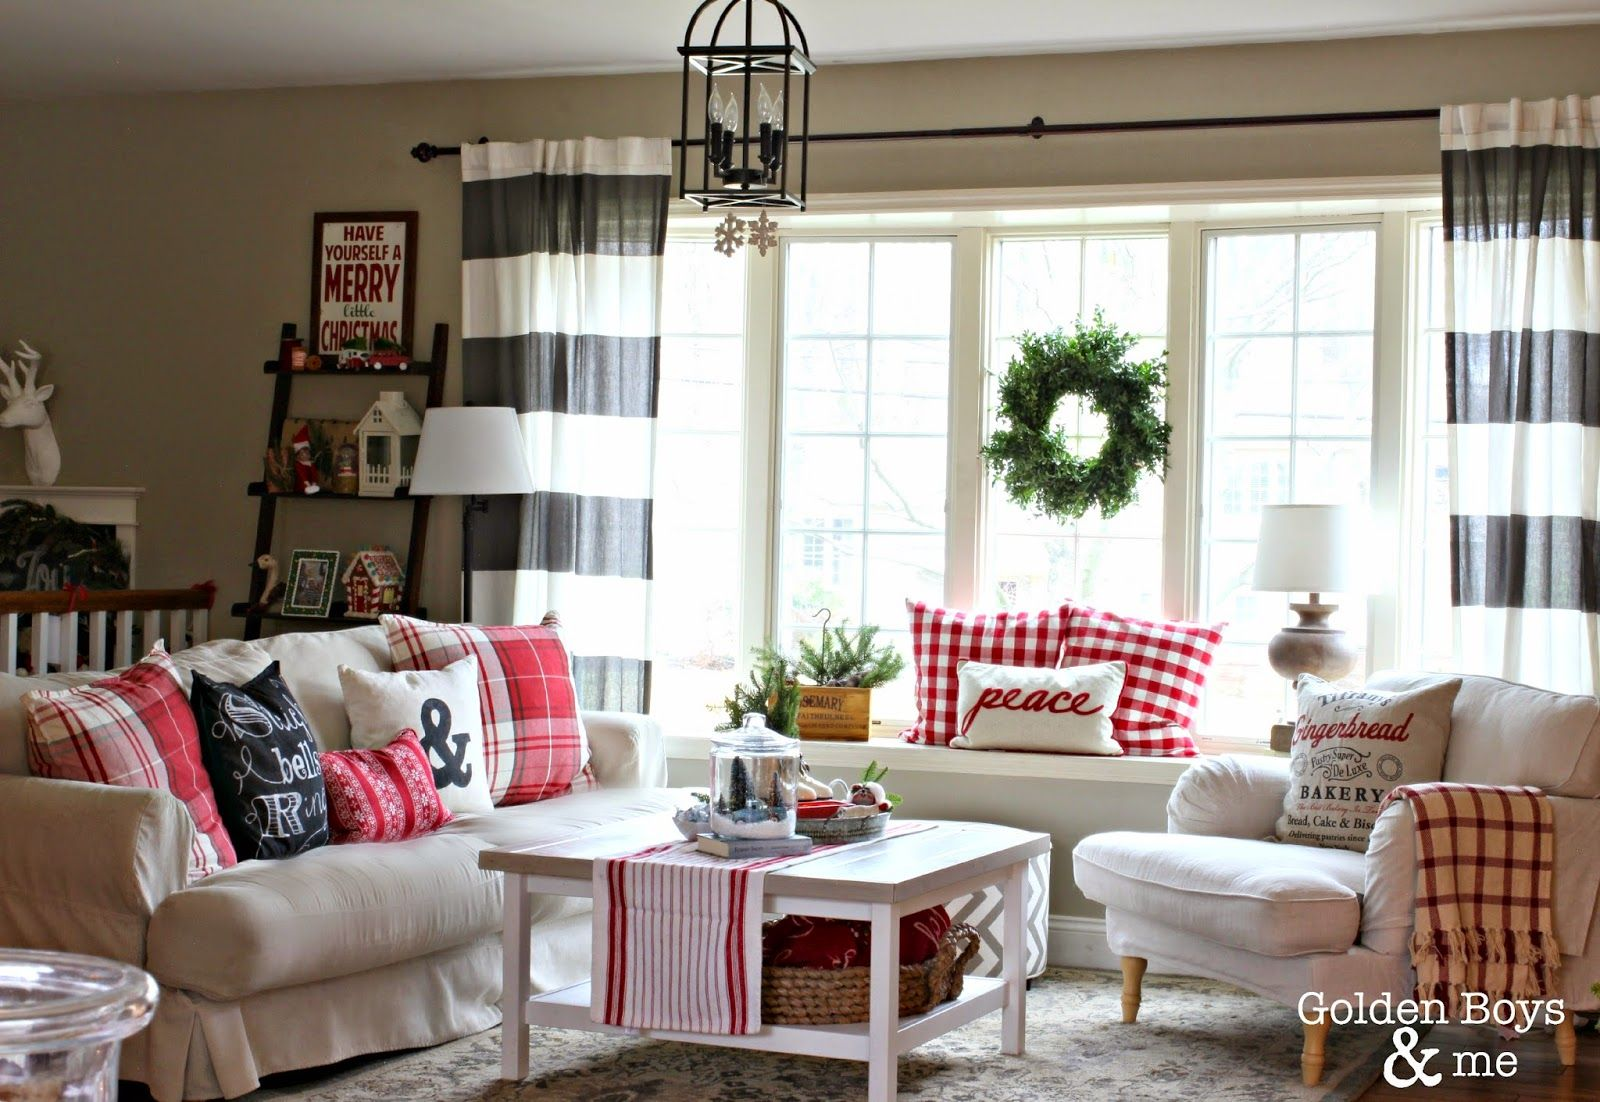 Holiday Home Tour 2014 Ideas For The House Christmas